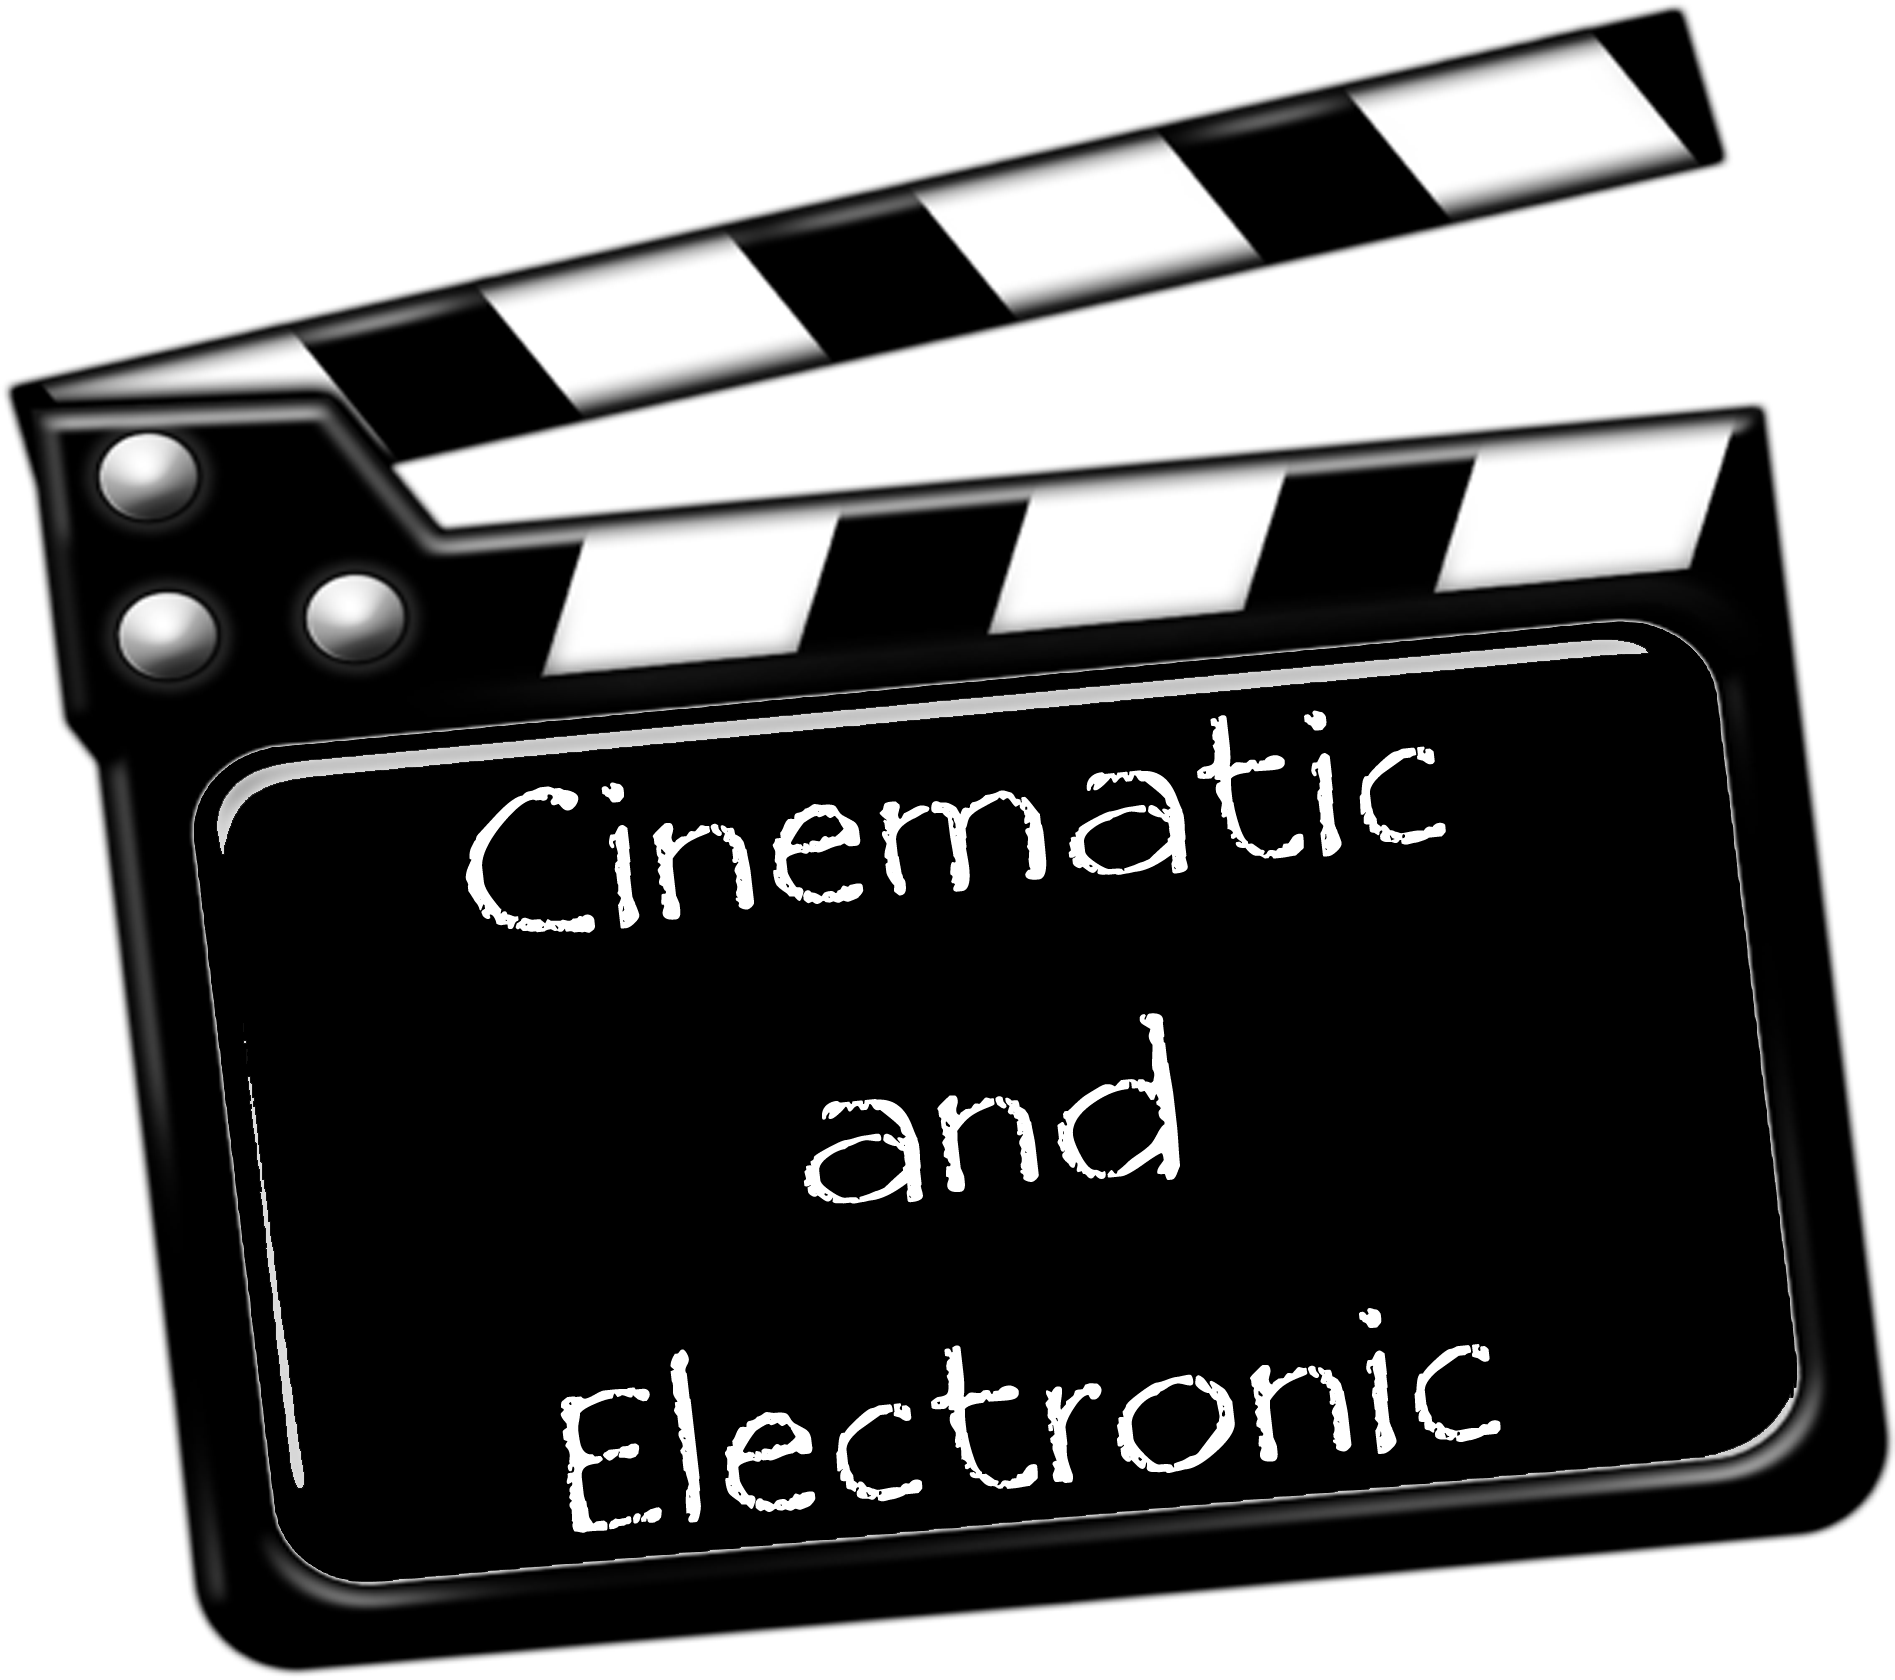 Cinematic and Electronic